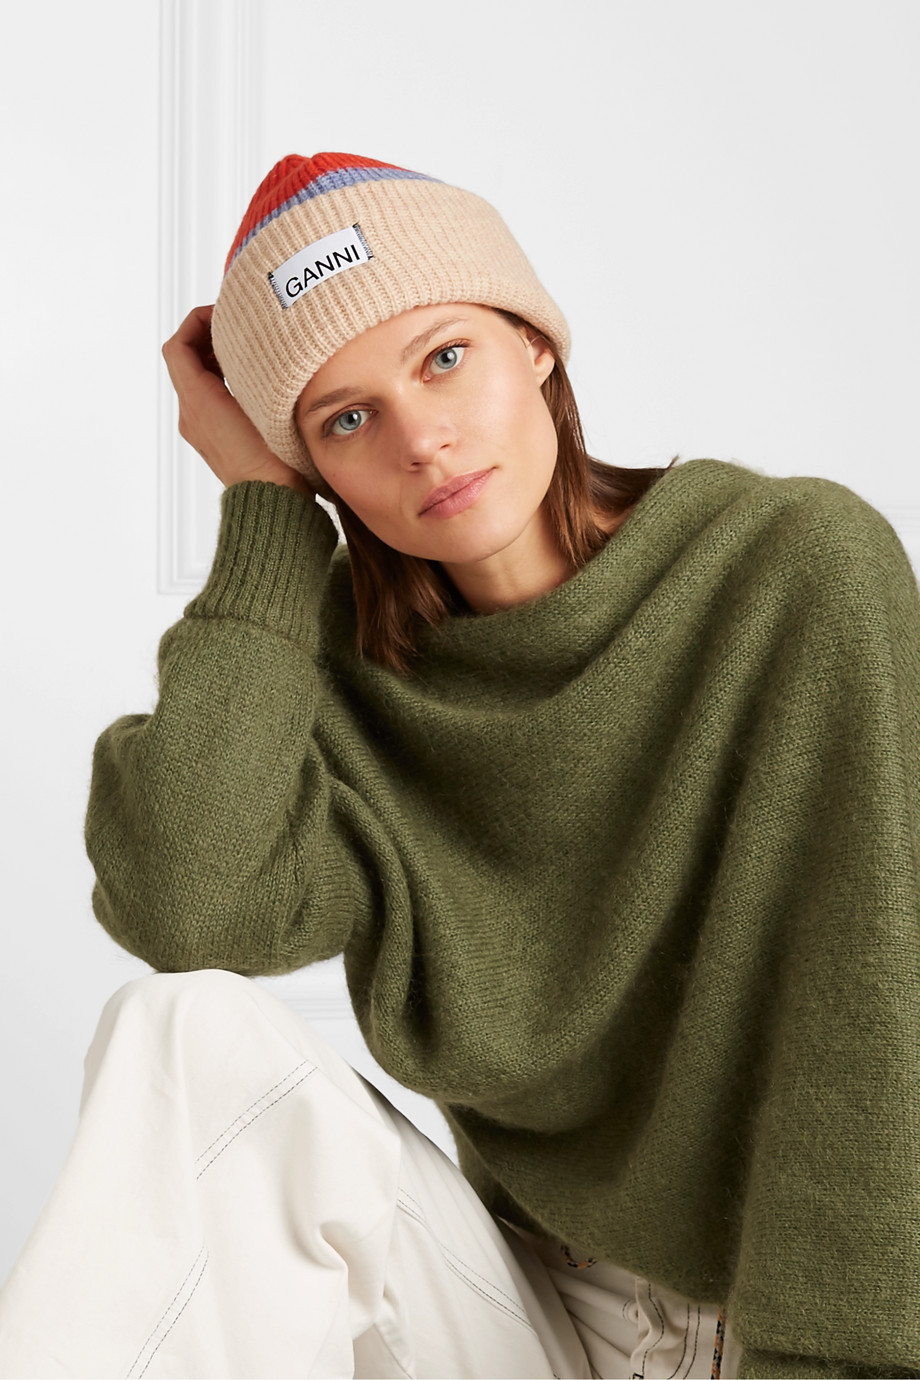 25 Under $200 Gifts to Buy From Net-A-Porter – Ganni Beanie